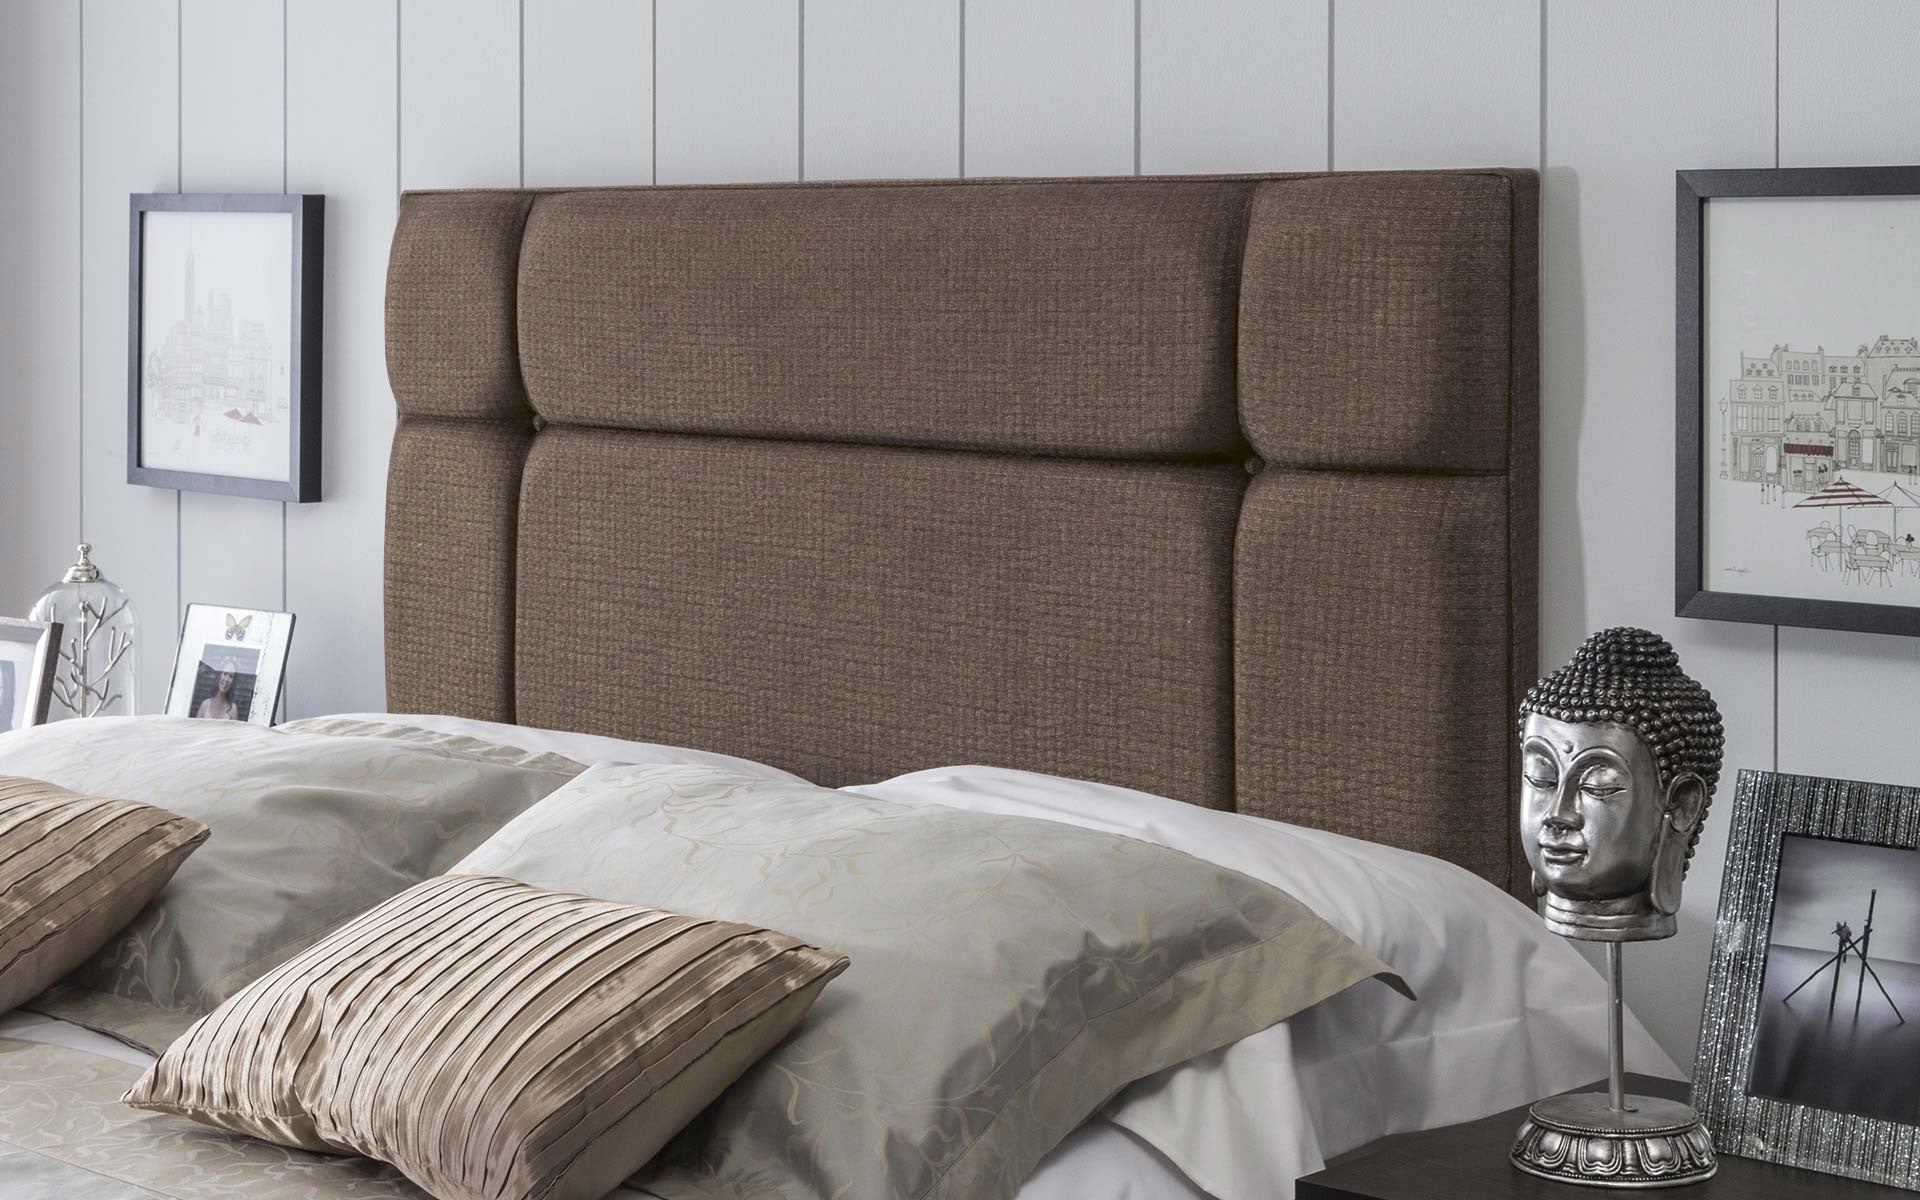 Pavia Upholstered Headboard - 5ft King Size - The Headboard Store